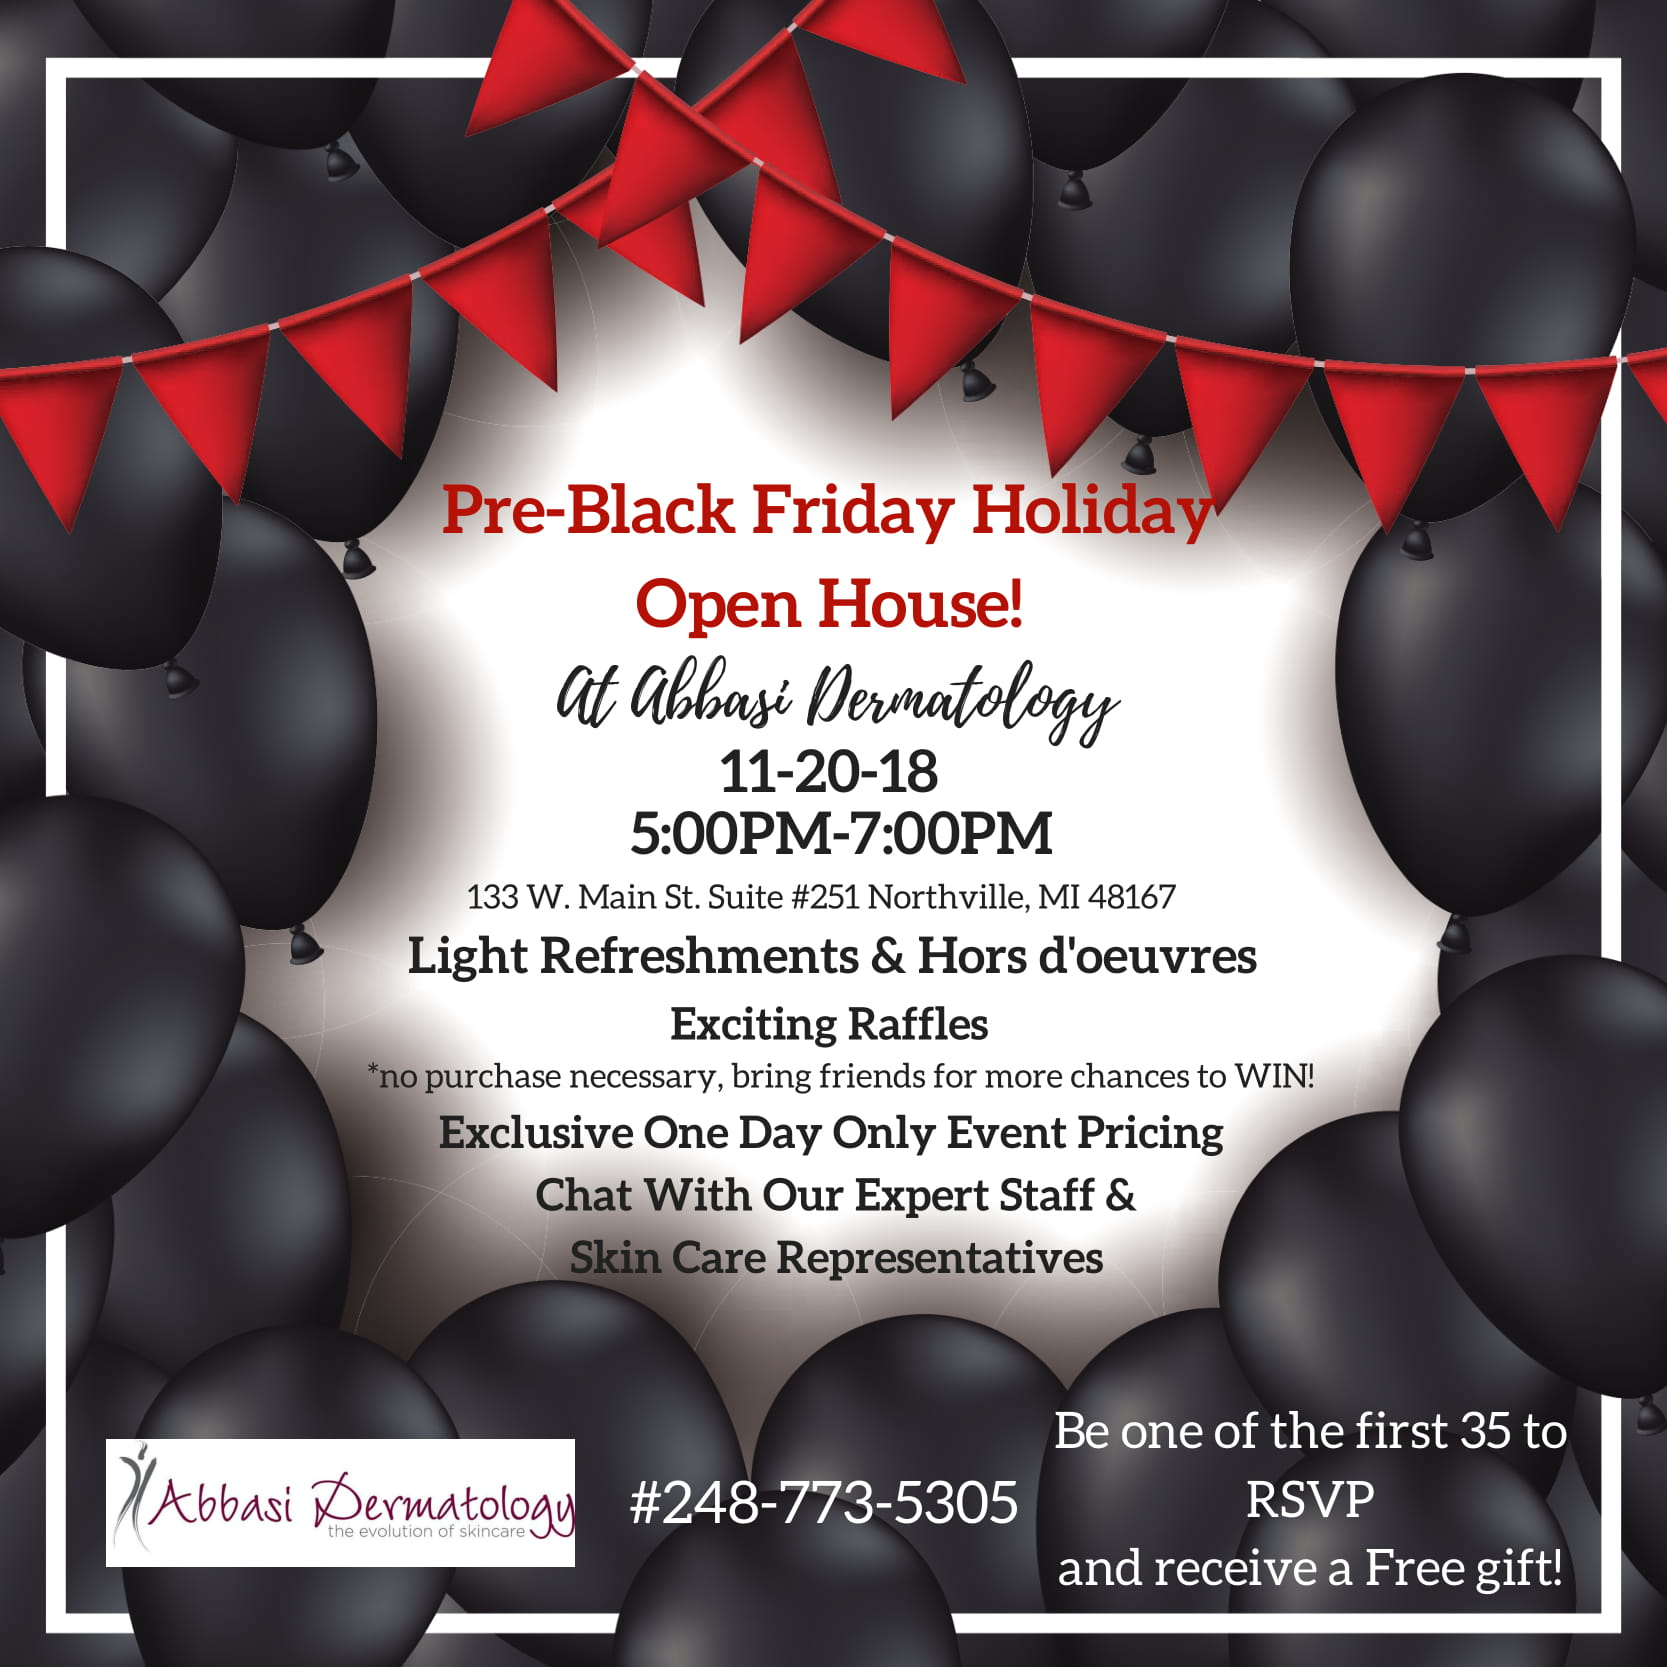 Black Friday Holiday open house-1.jpg